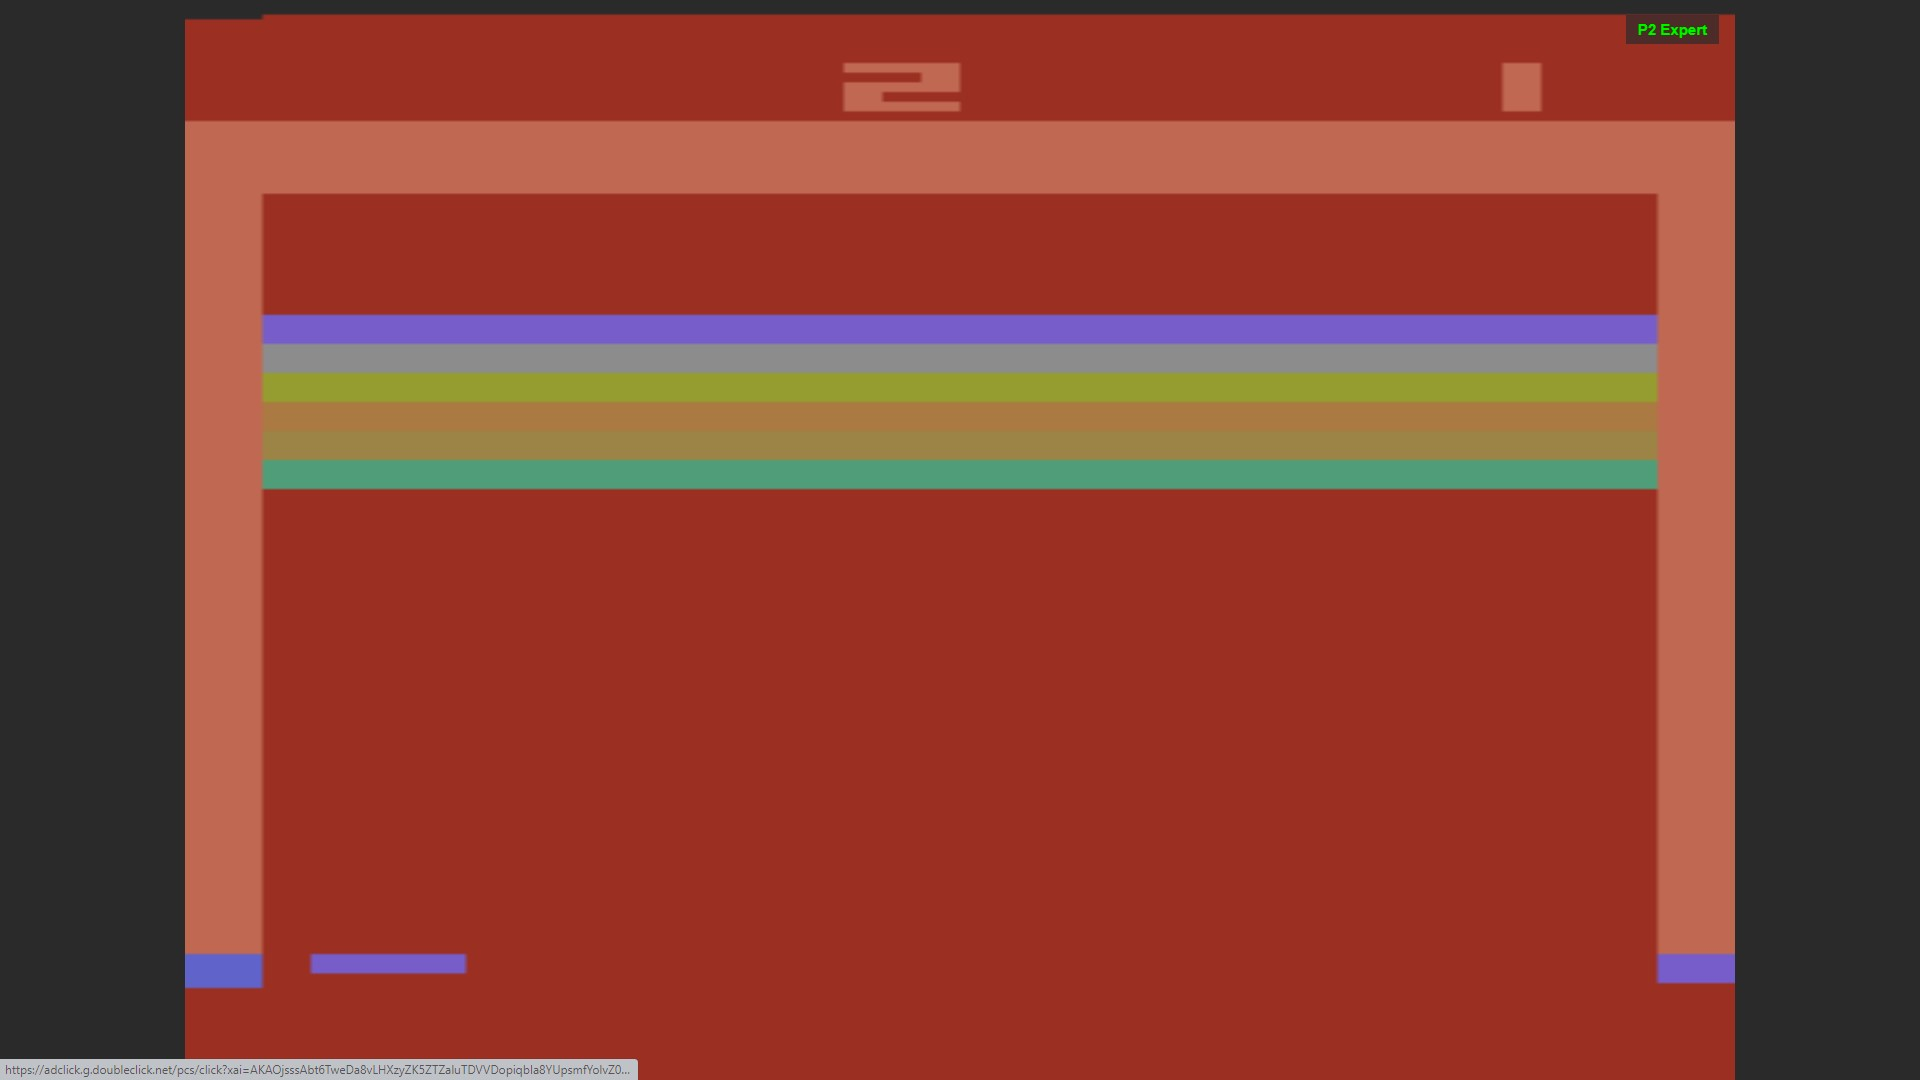 AkinNahtanoj: Breakout: Game 2 (Atari 2600 Emulated Expert/A Mode) 337 points on 2020-10-13 15:33:49